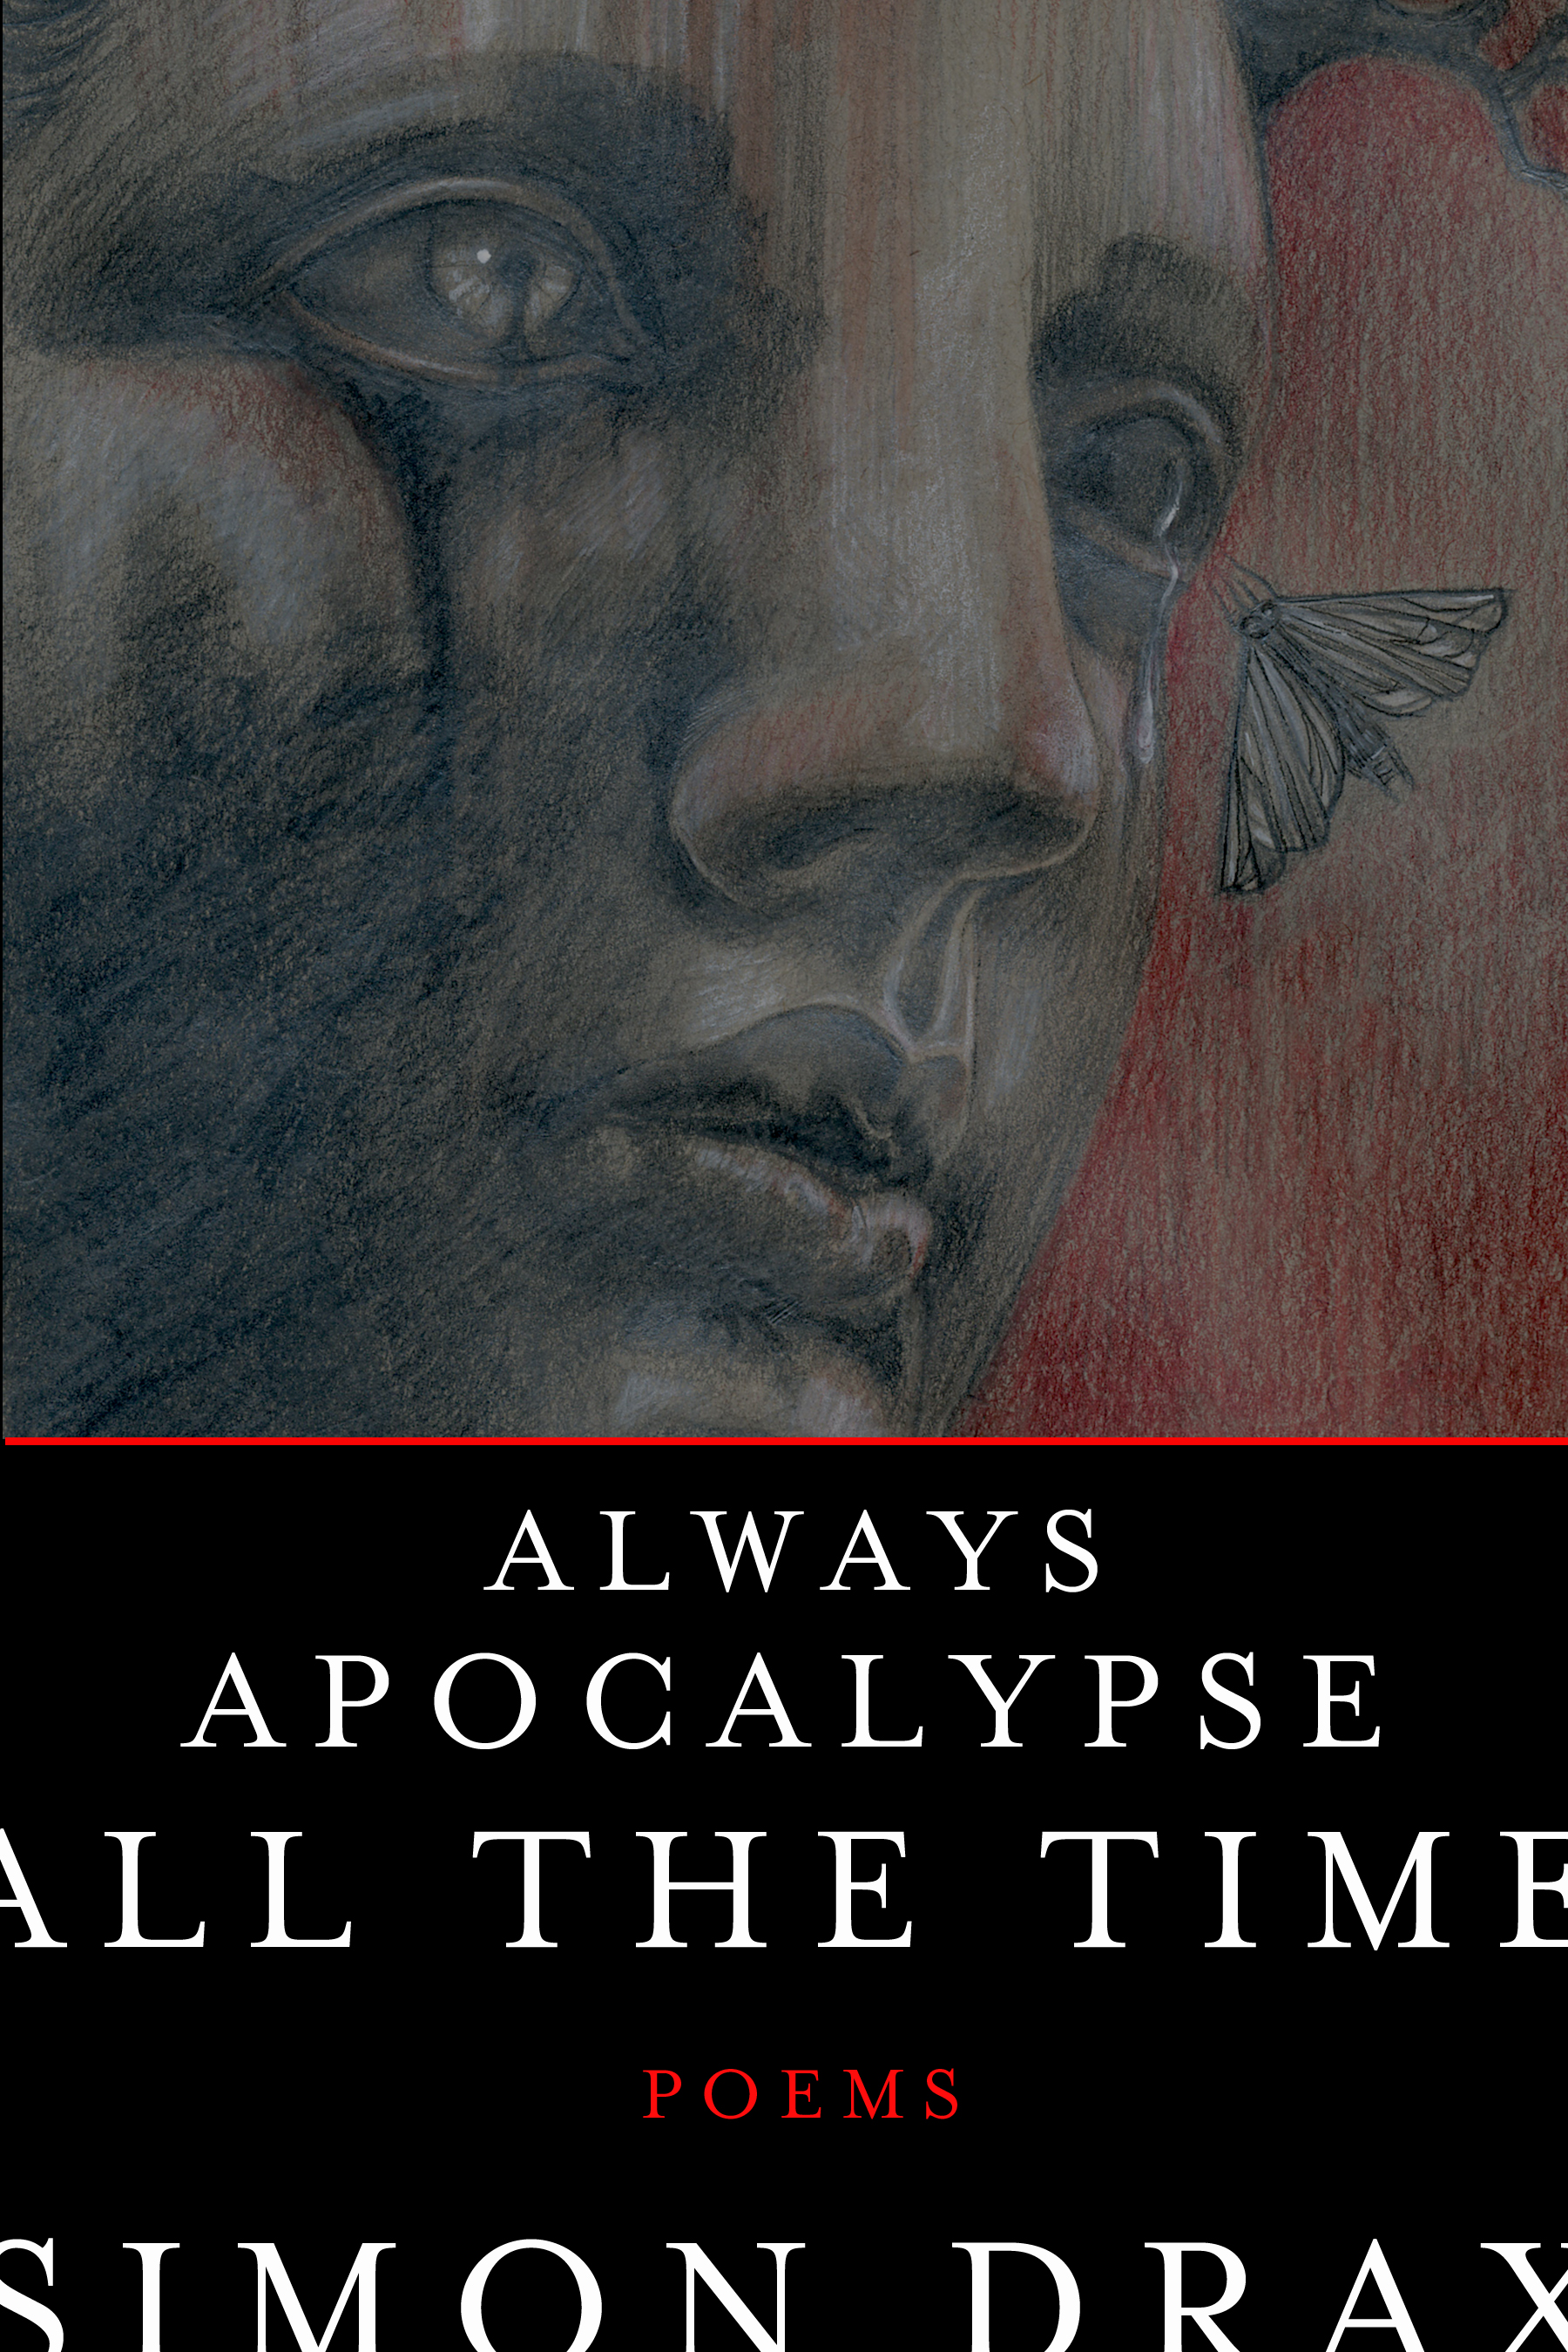 Always Apocalypse Cover 1 Rev